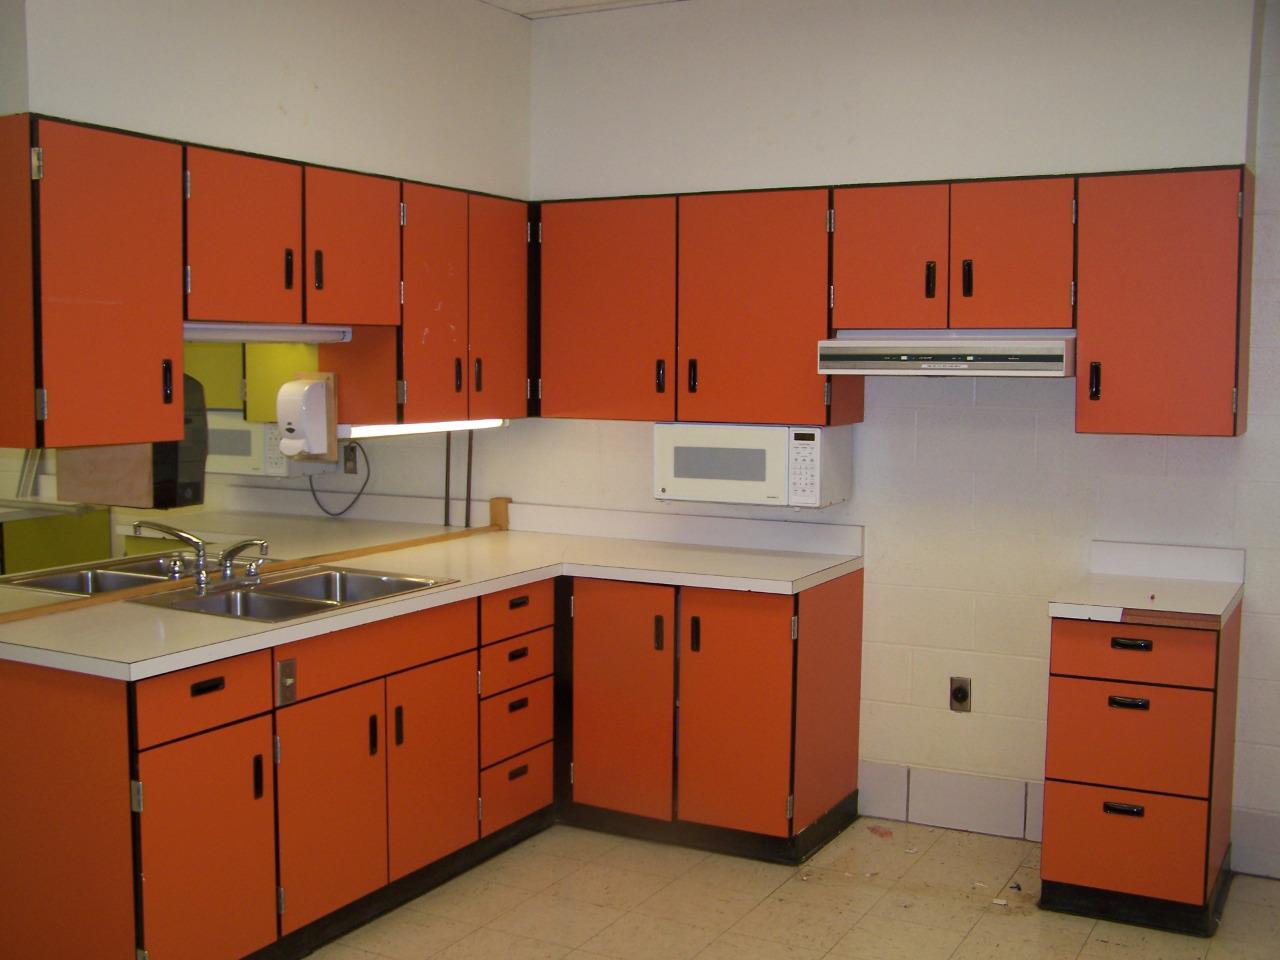 Http Ebay Com Itm Retro 1960s Early 1970s Kitchen Cabinets Complete Set Of 12 Orange 301854652821